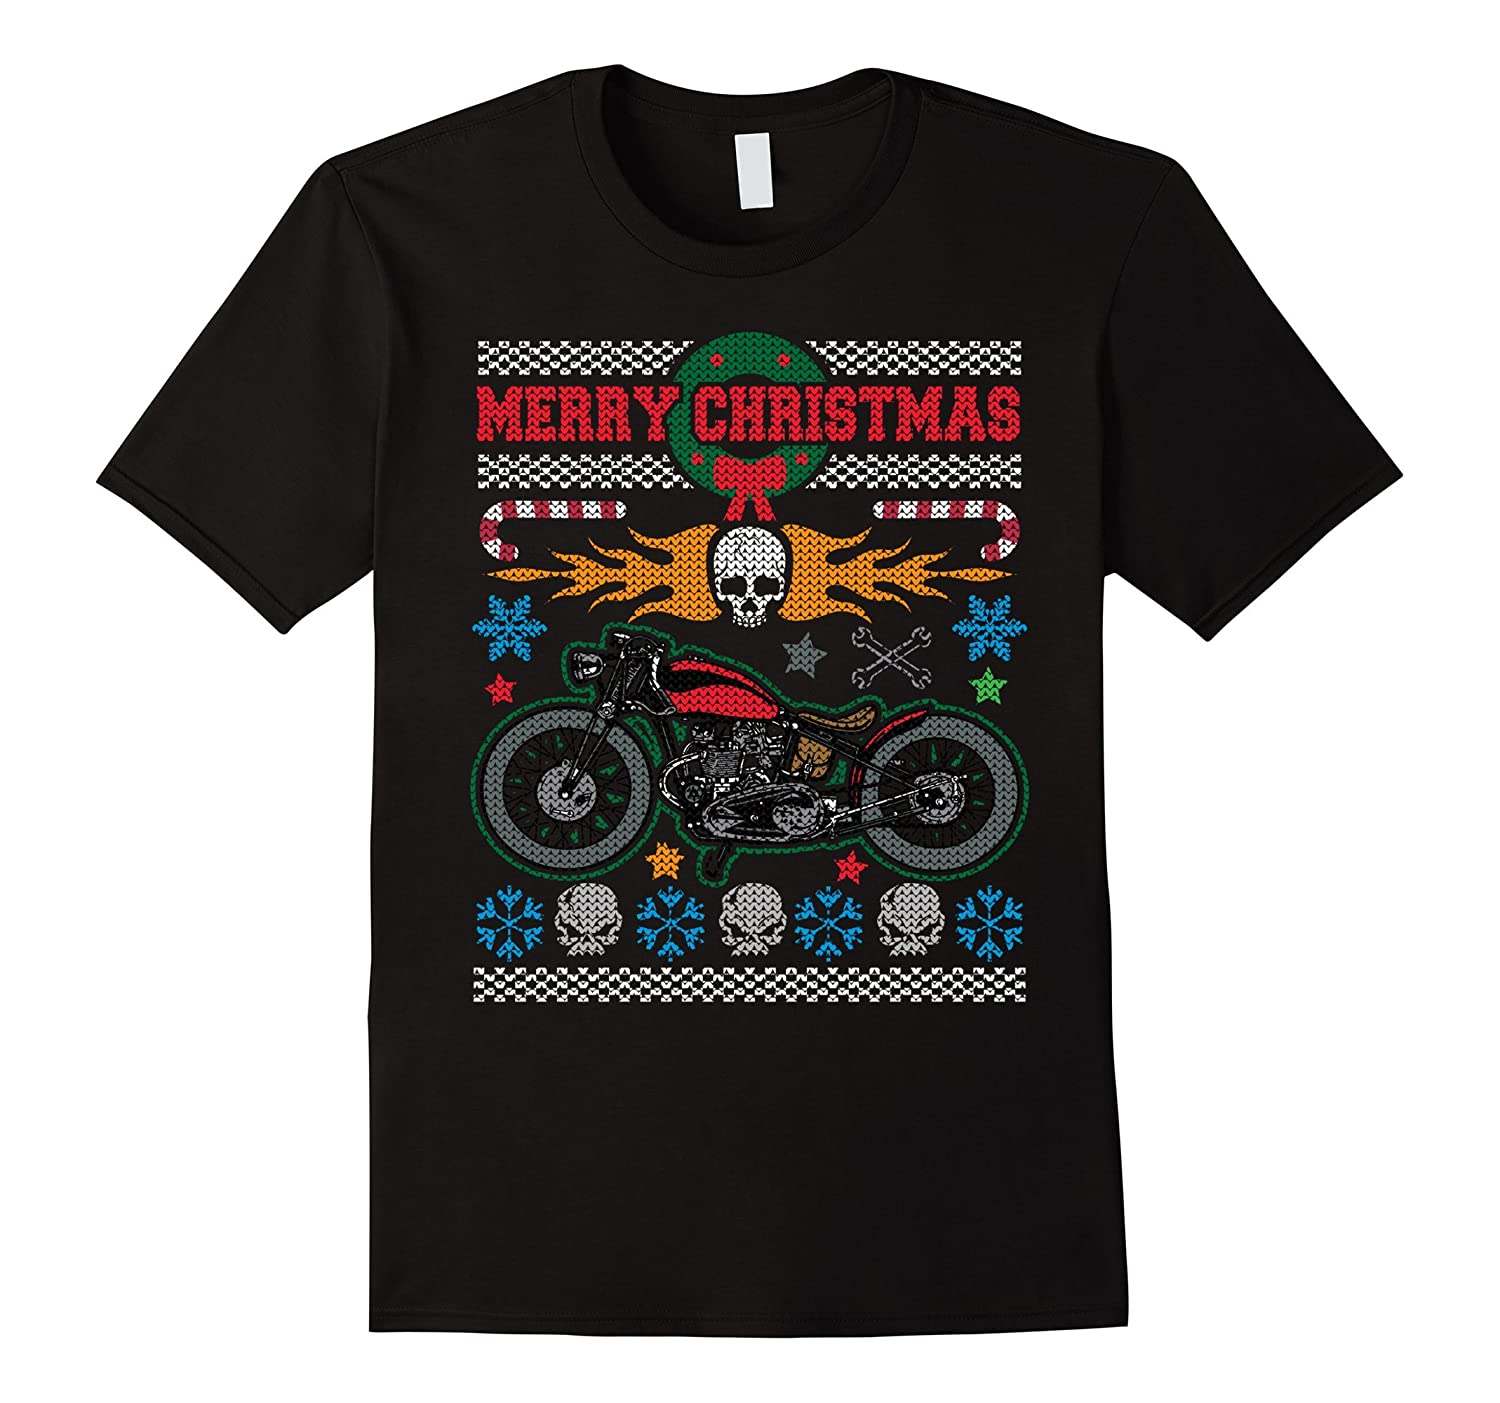 Merry Christmas Vintage Motorcycle Ugly 1 T-shirt